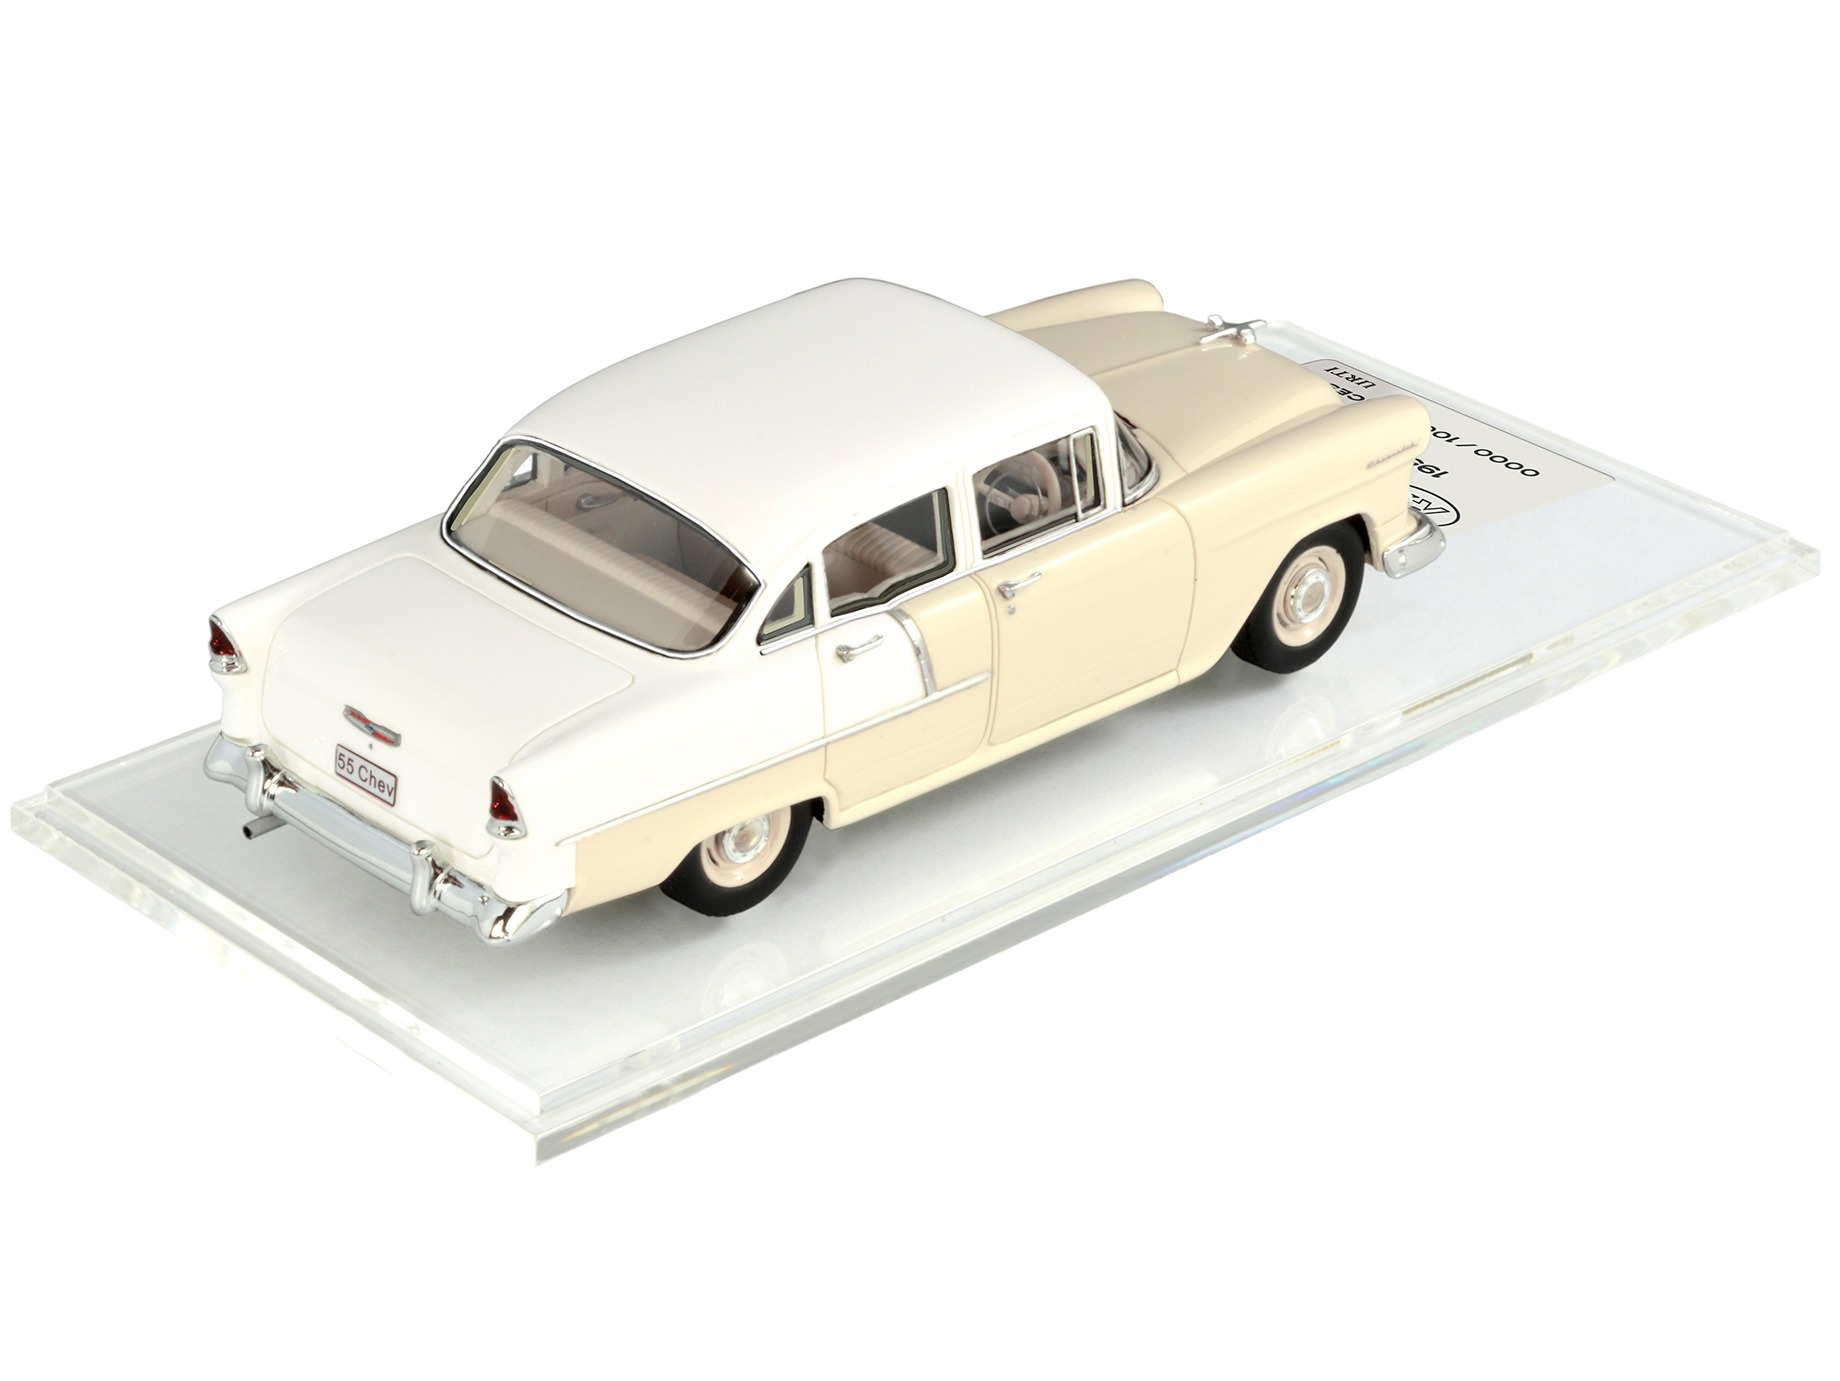 1955 Chevy – Shoreline Beige / India Ivory